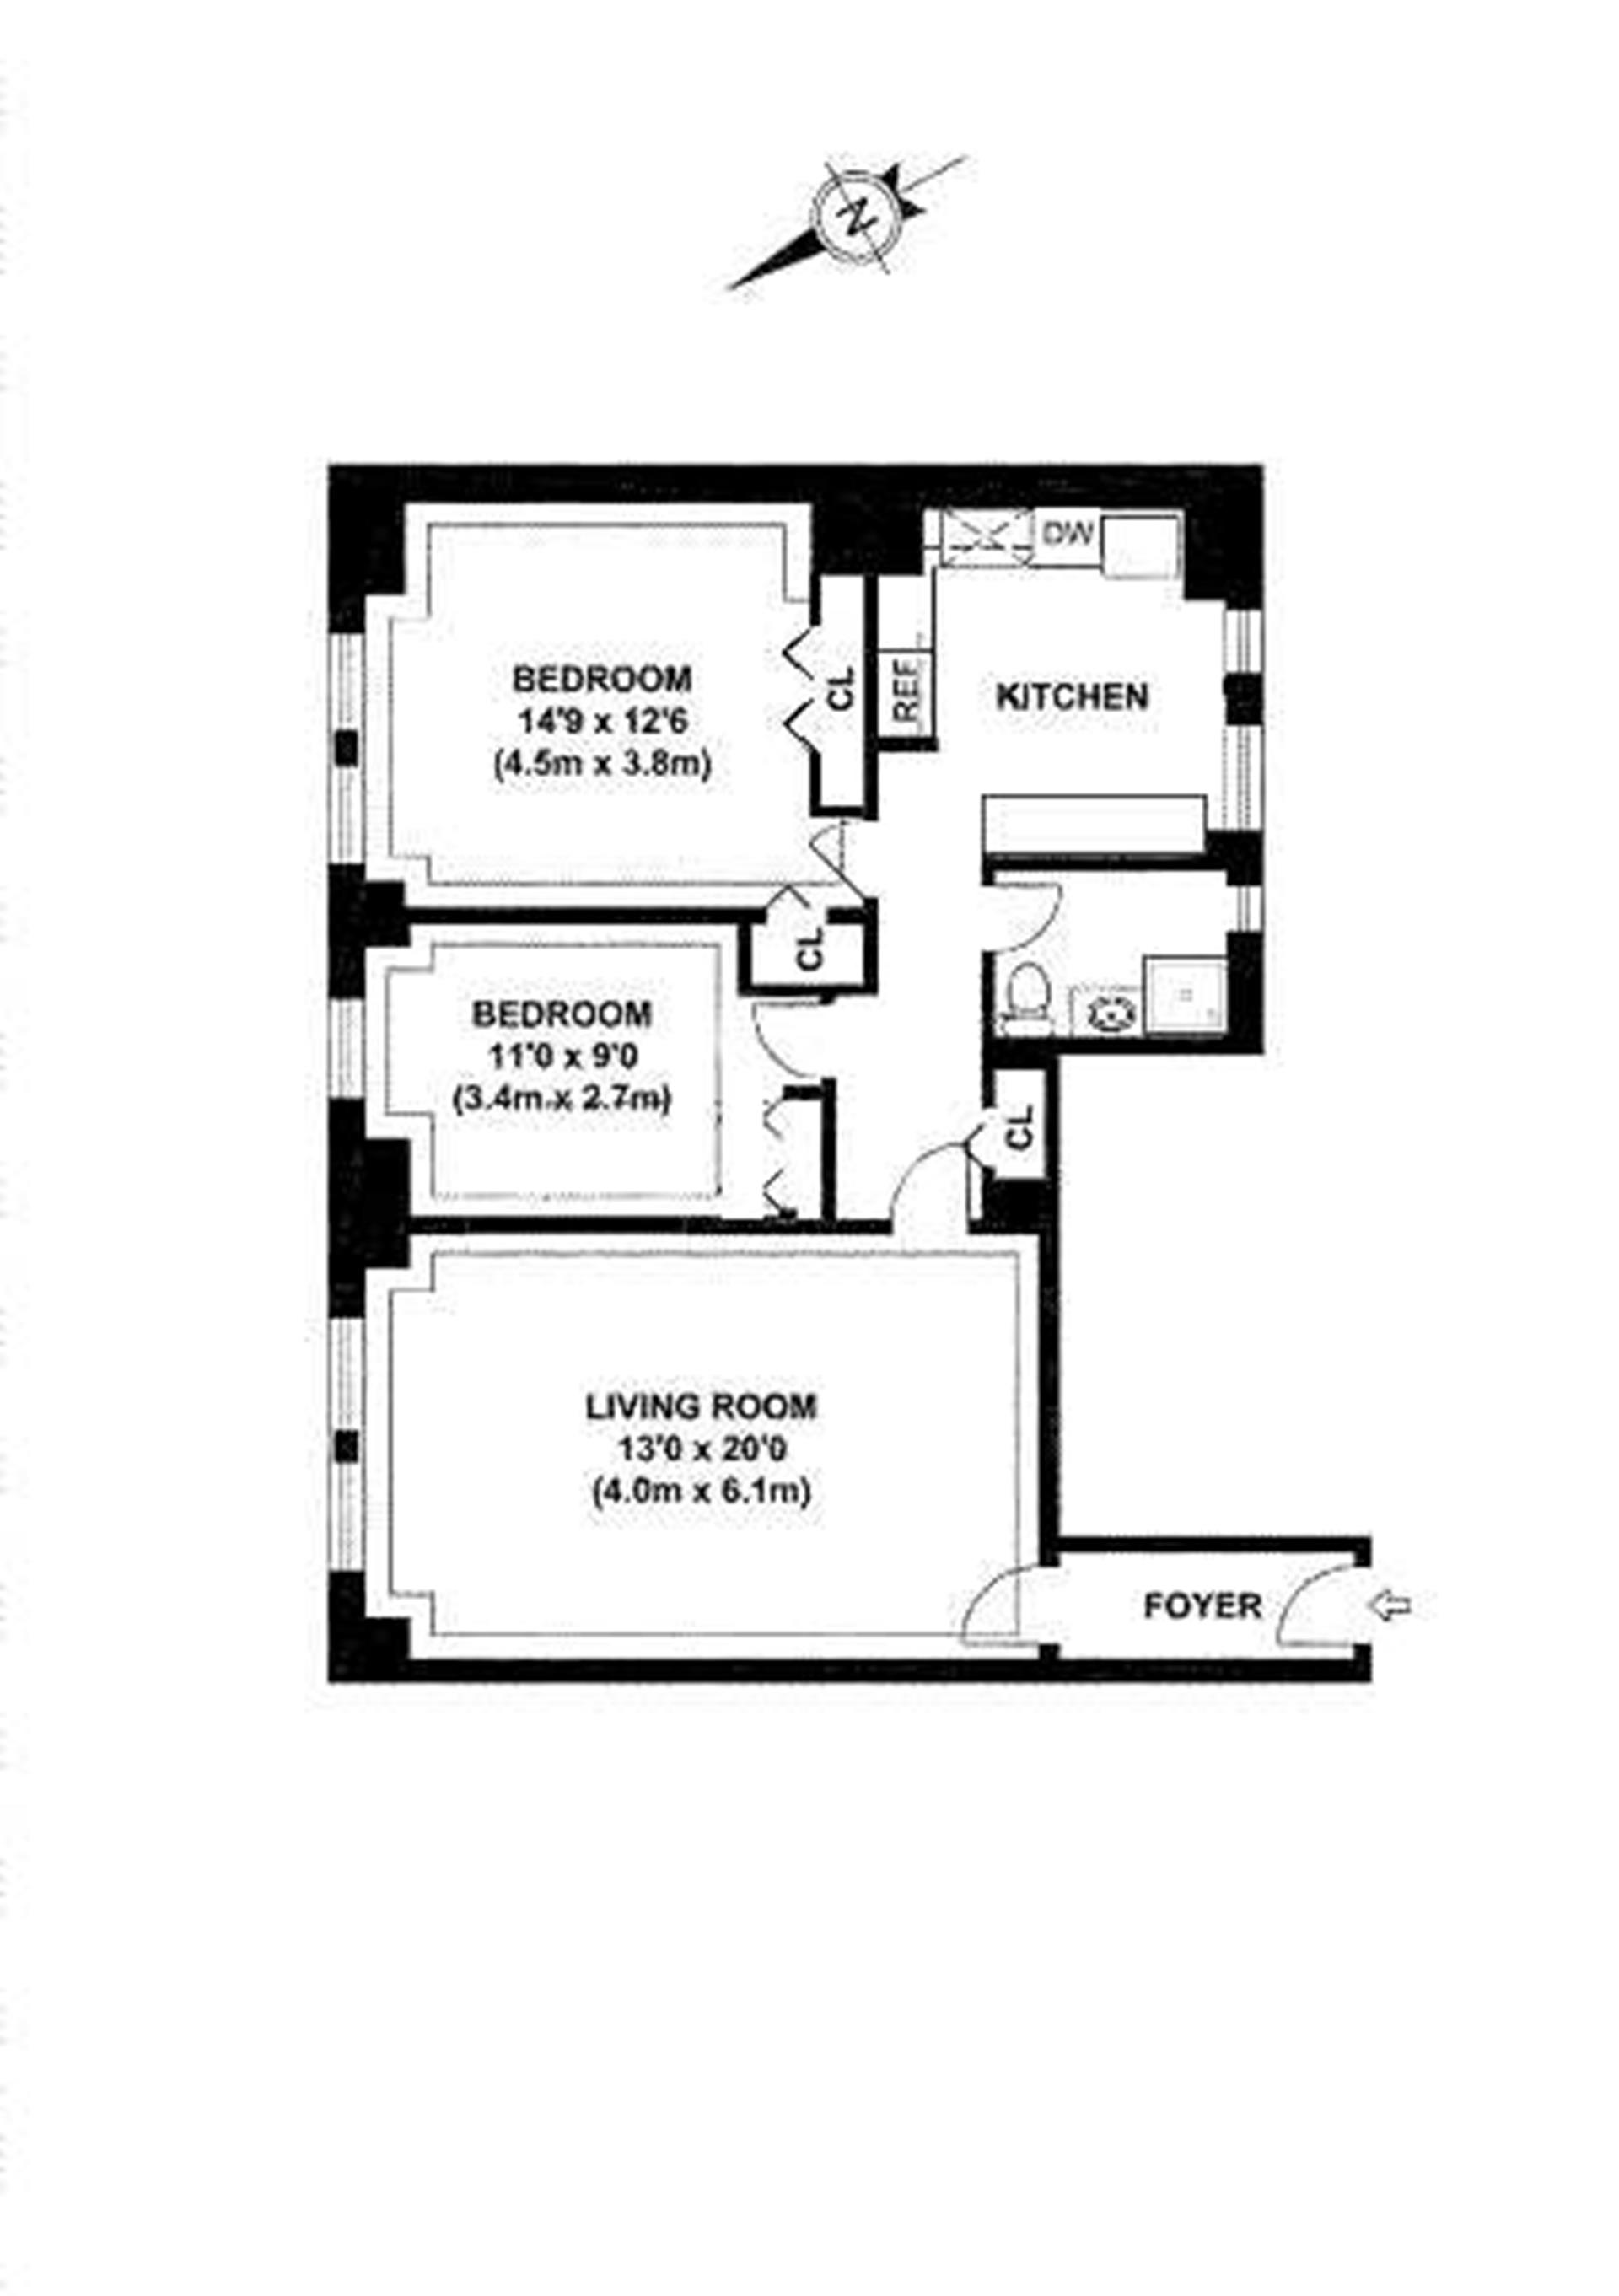 Floor plan of 321 East 43rd St, 812 - Turtle Bay, New York